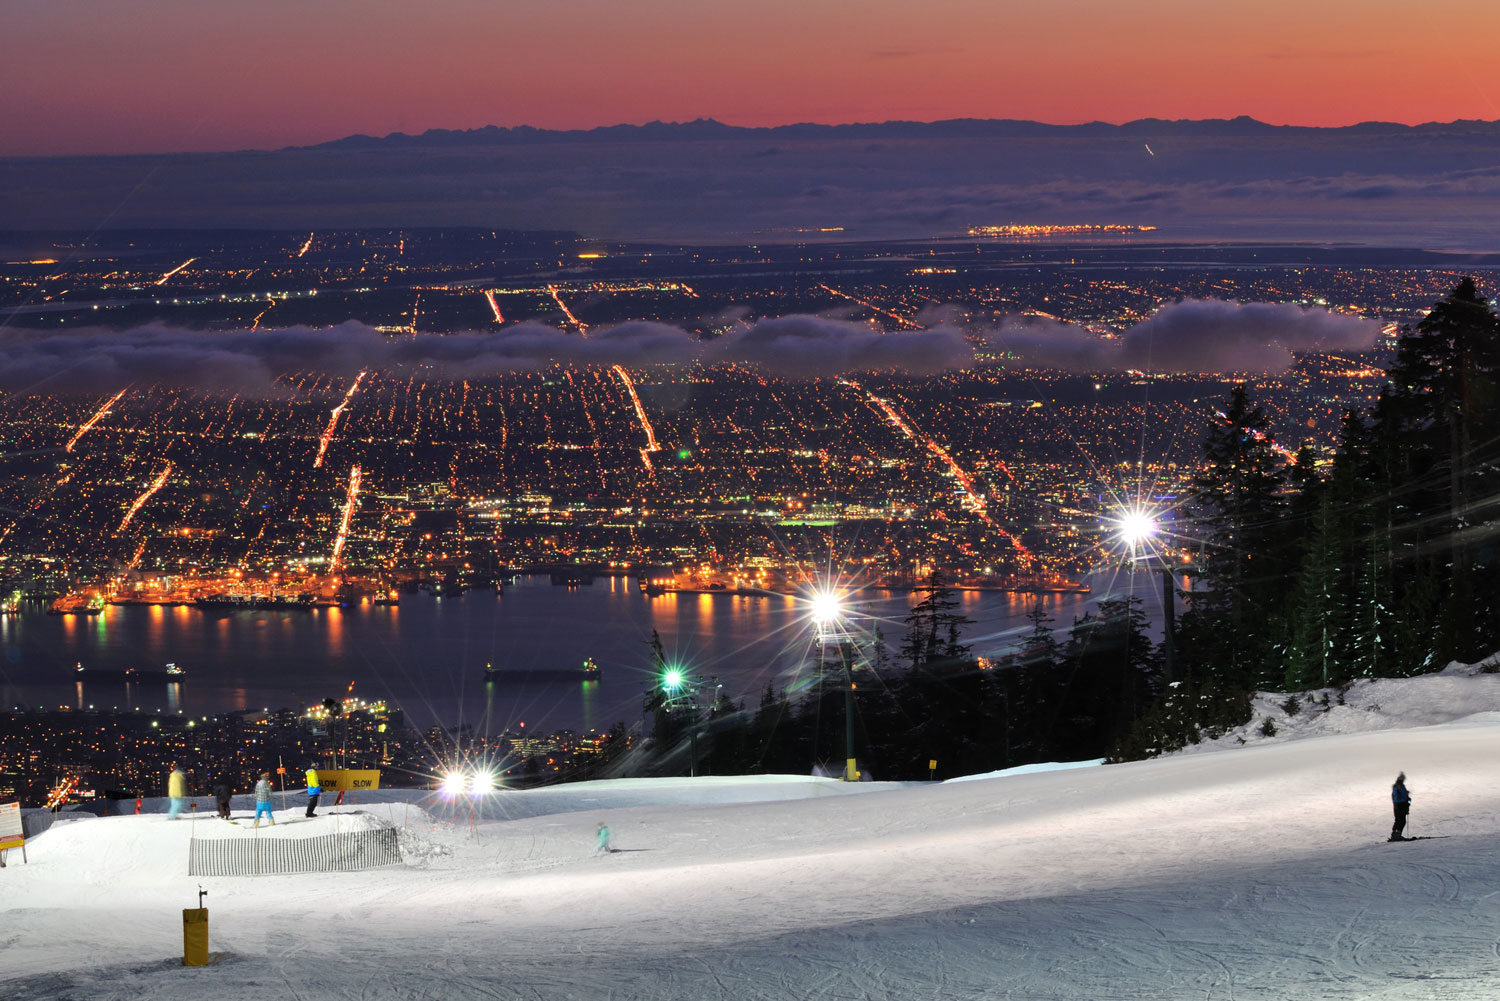 Night time skiing at Grouse Mountain in BC, Canada.